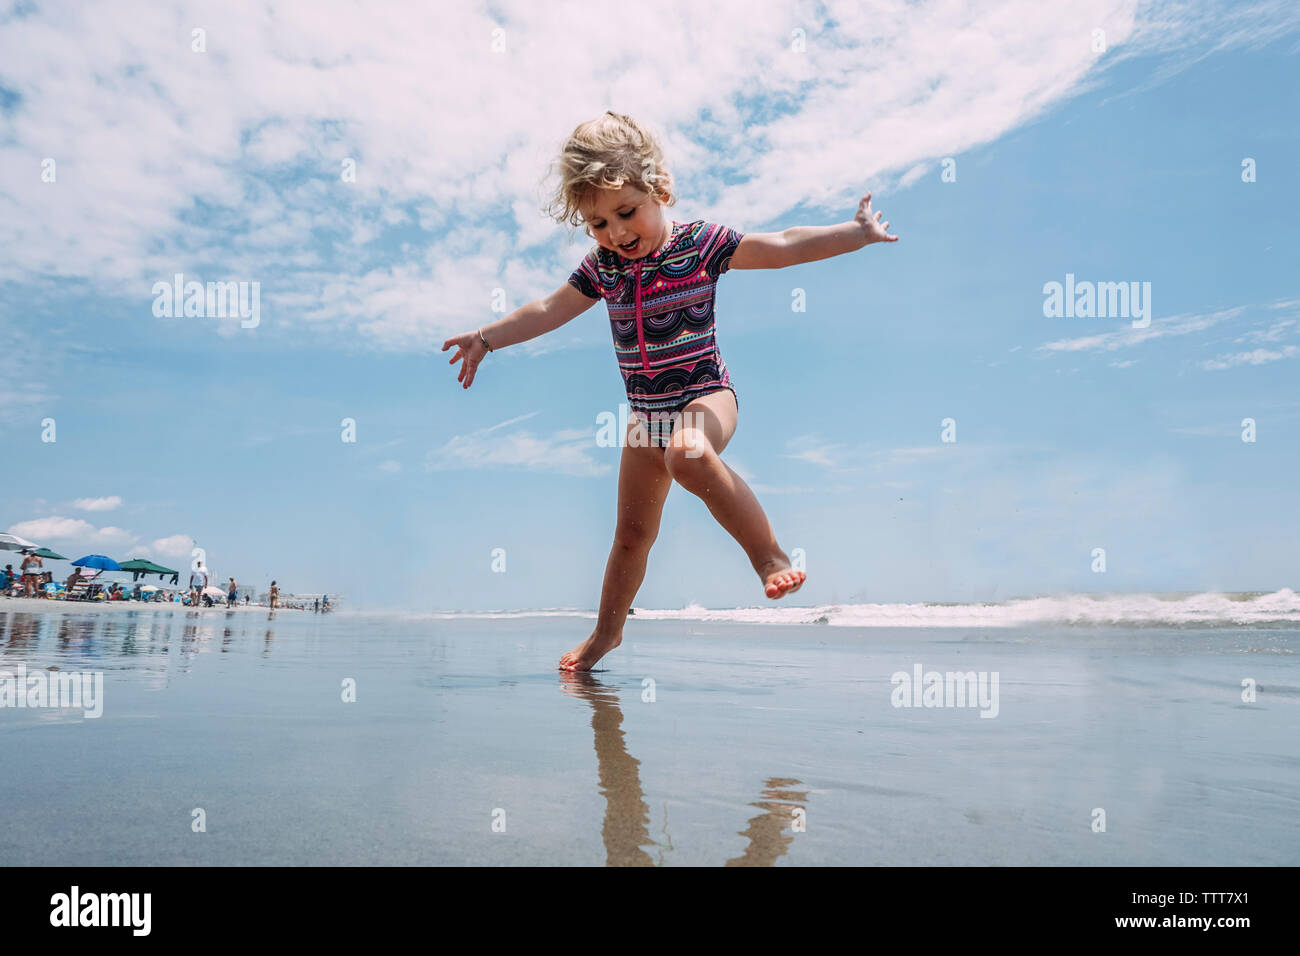 Low angle view of carefree girl playing at beach against cloudy sky - Stock Image